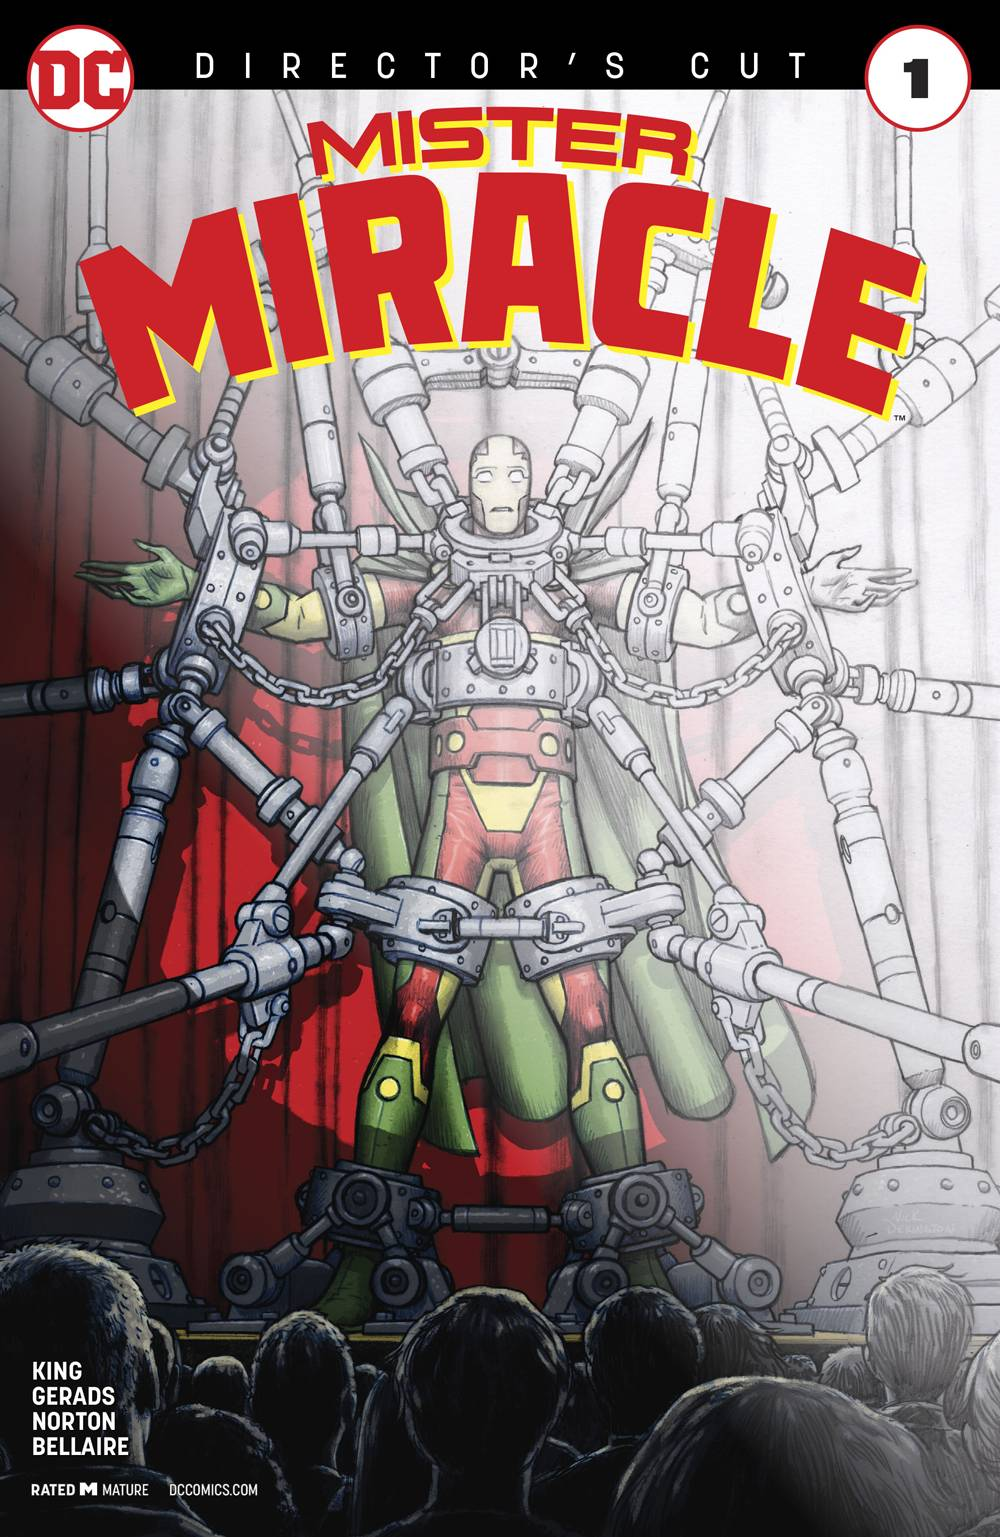 MISTER MIRACLE DIRECTORS CUT 1.jpg